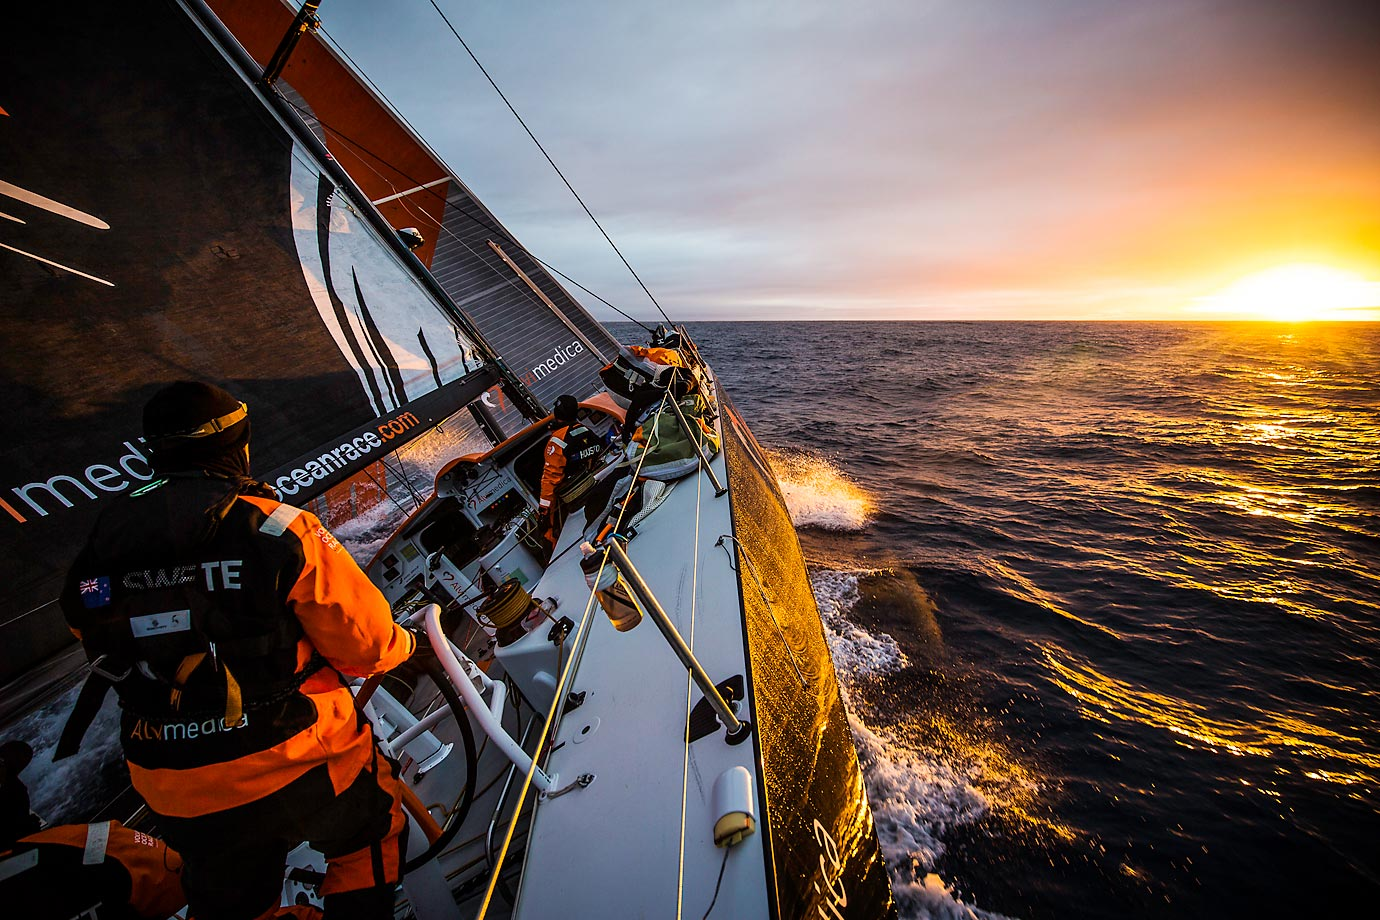 Sunrise on board Alvimedica on Day 24 of the Volvo Ocean Race 2014-15.  It's the 12th running of this ocean marathon.